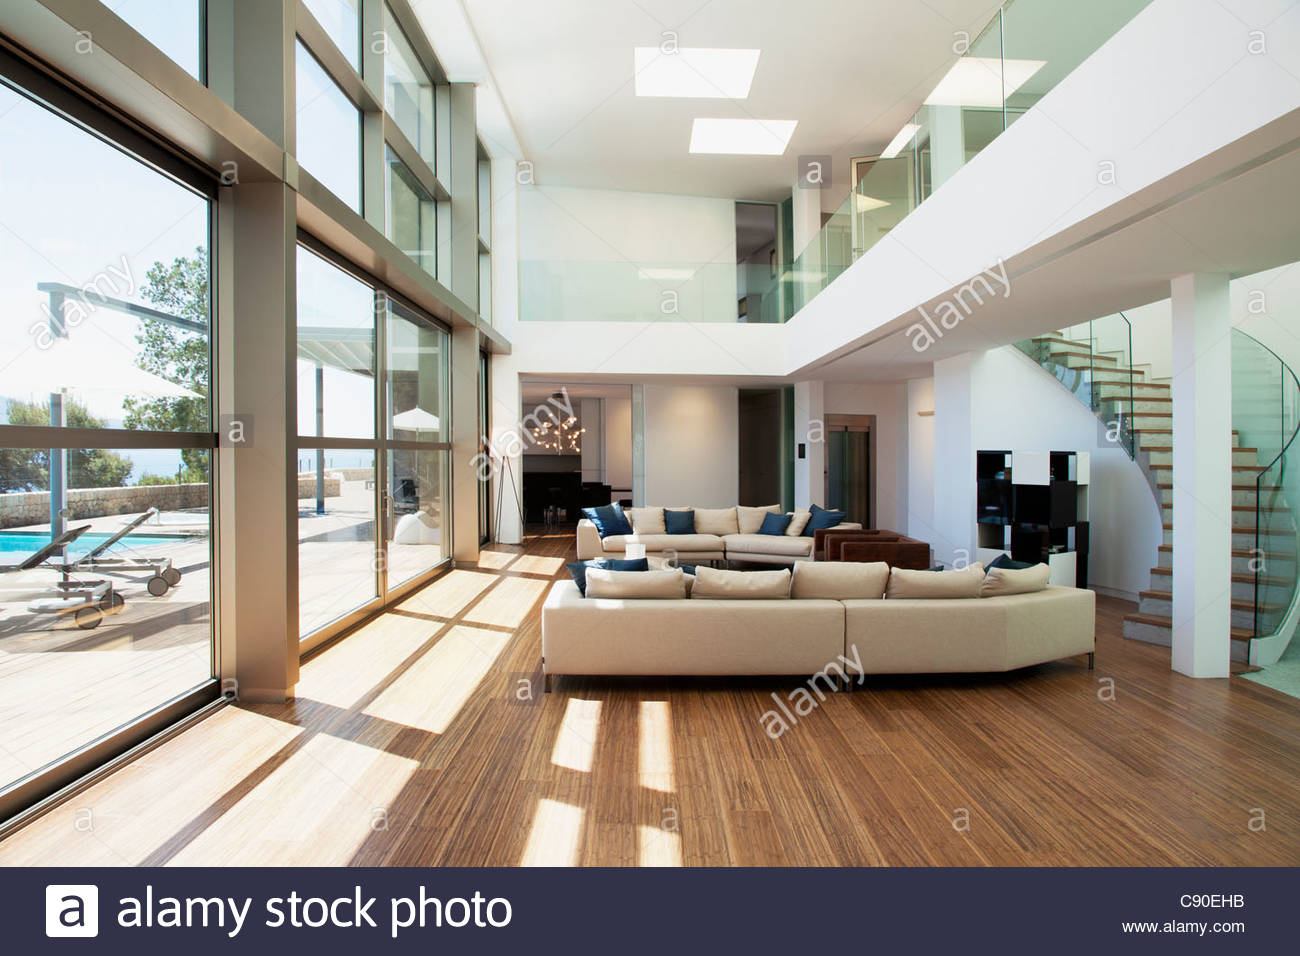 Open living space in modern house - Stock Image